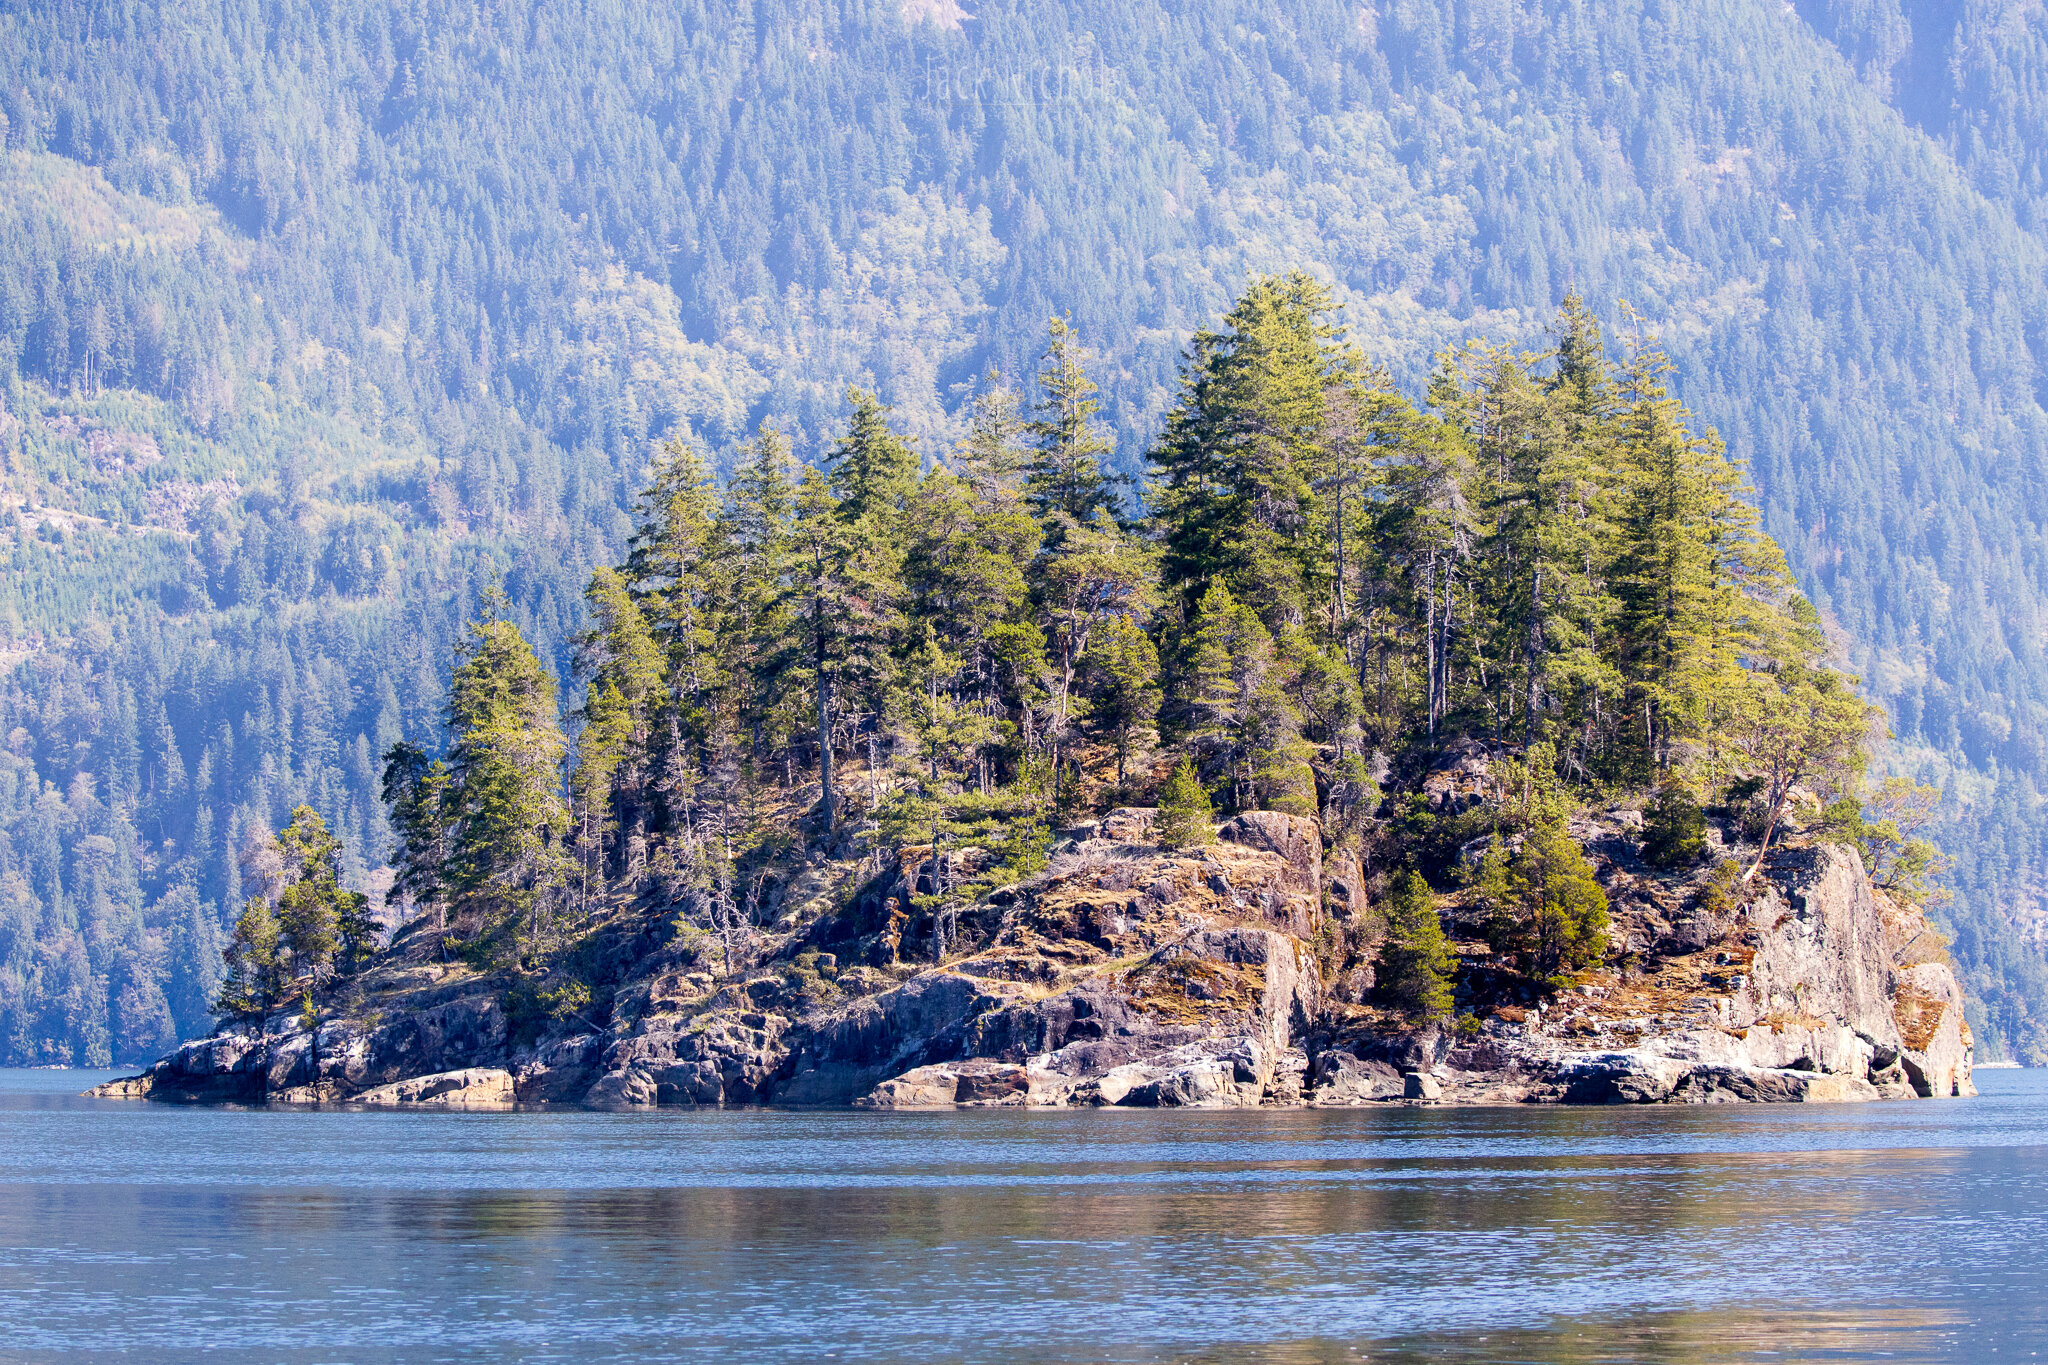 Campbell River, Water - Small forested island lit by the sun-20190906.jpg